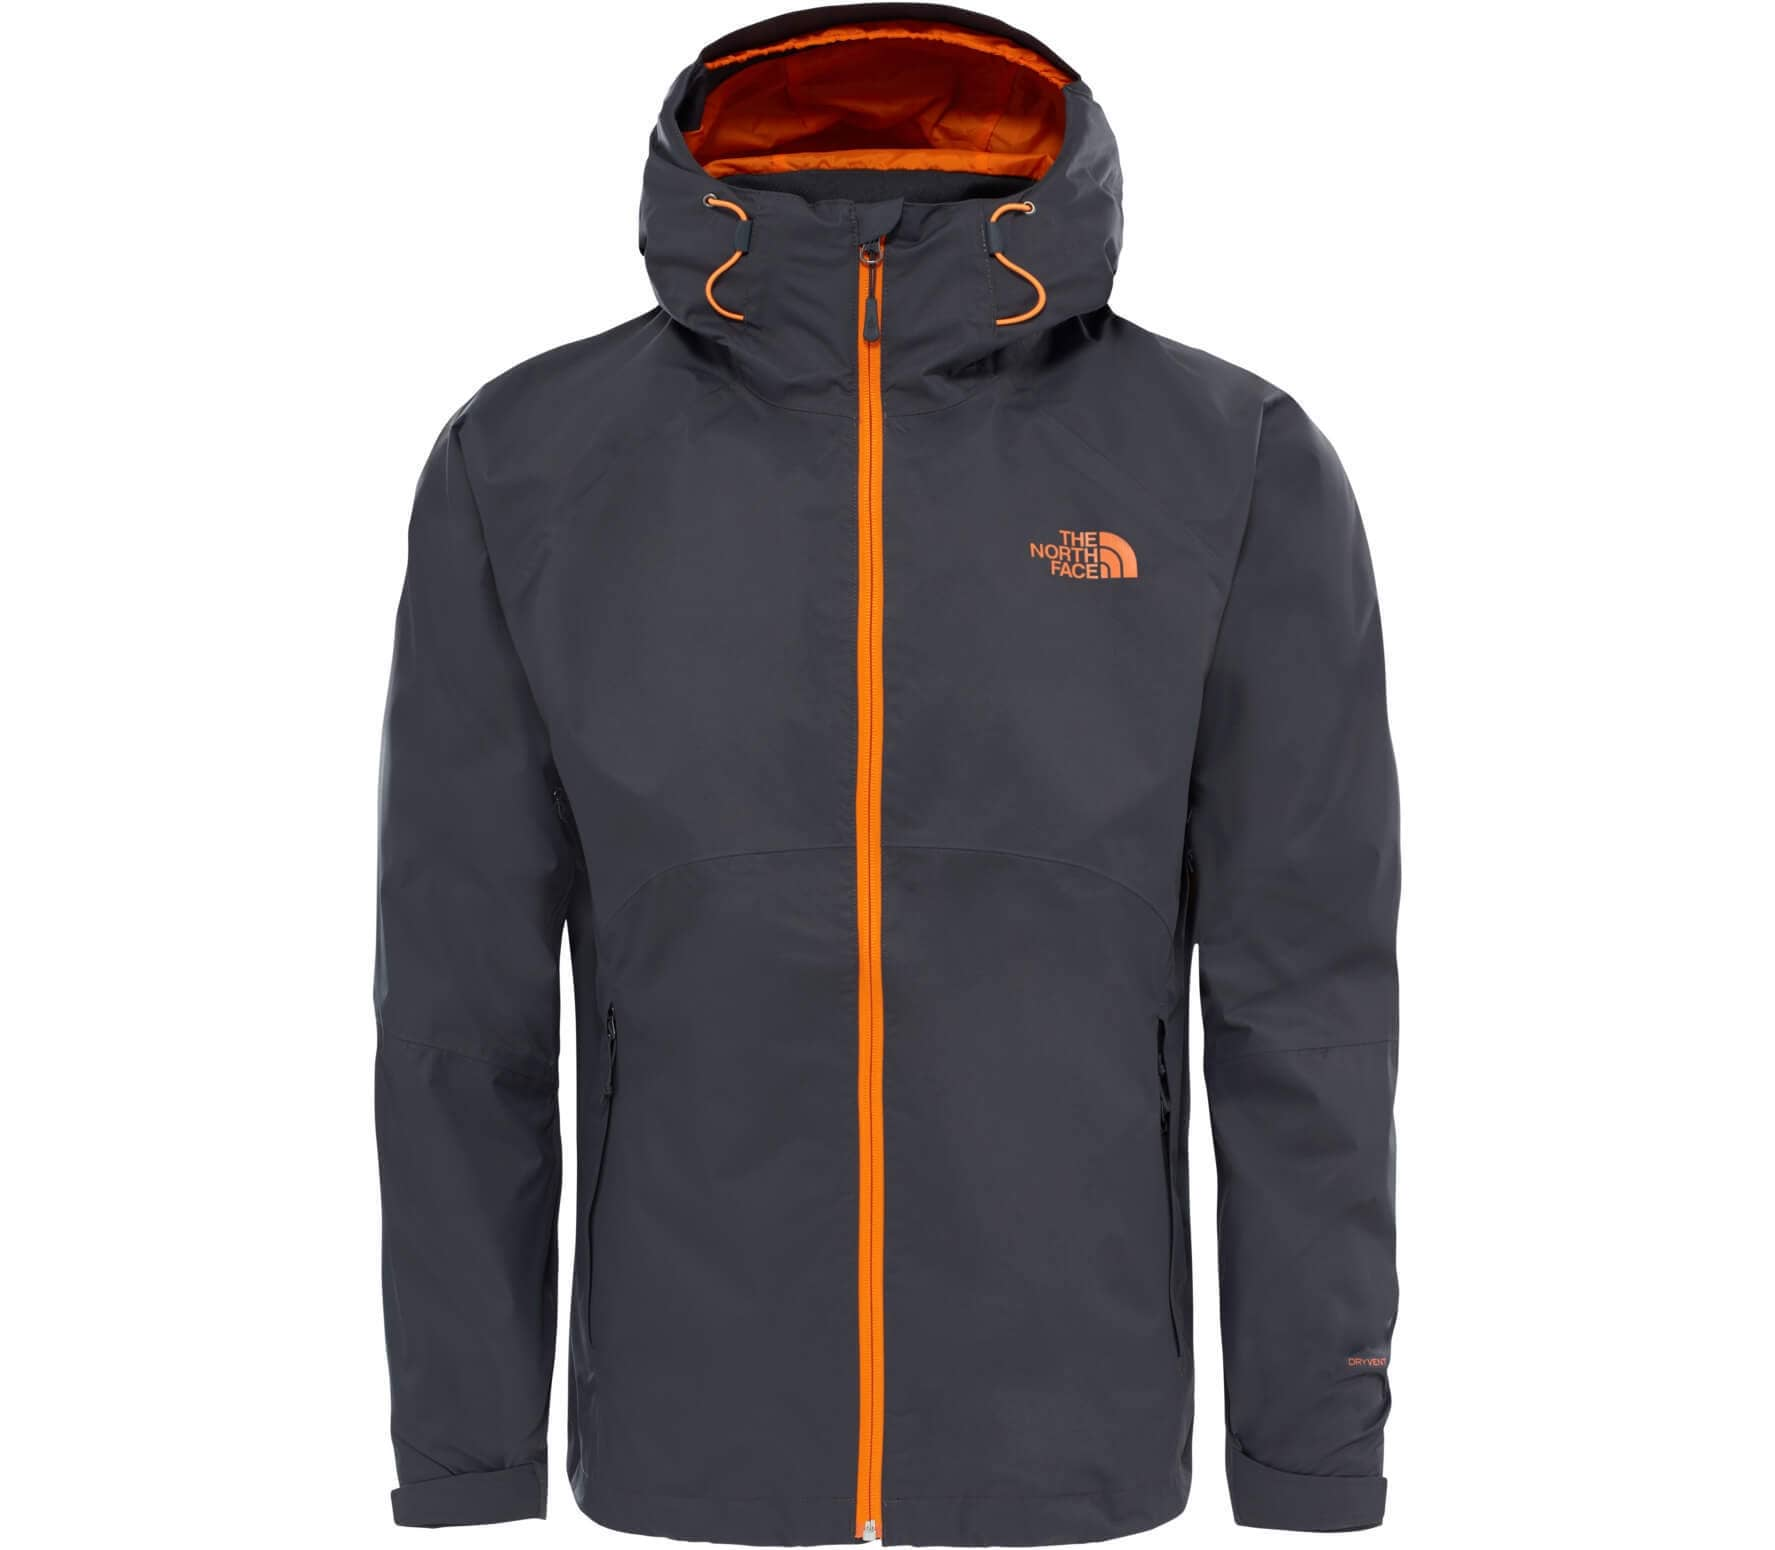 the north face sequence herren regenjacke dunkelgrau orange im online shop von keller sports. Black Bedroom Furniture Sets. Home Design Ideas